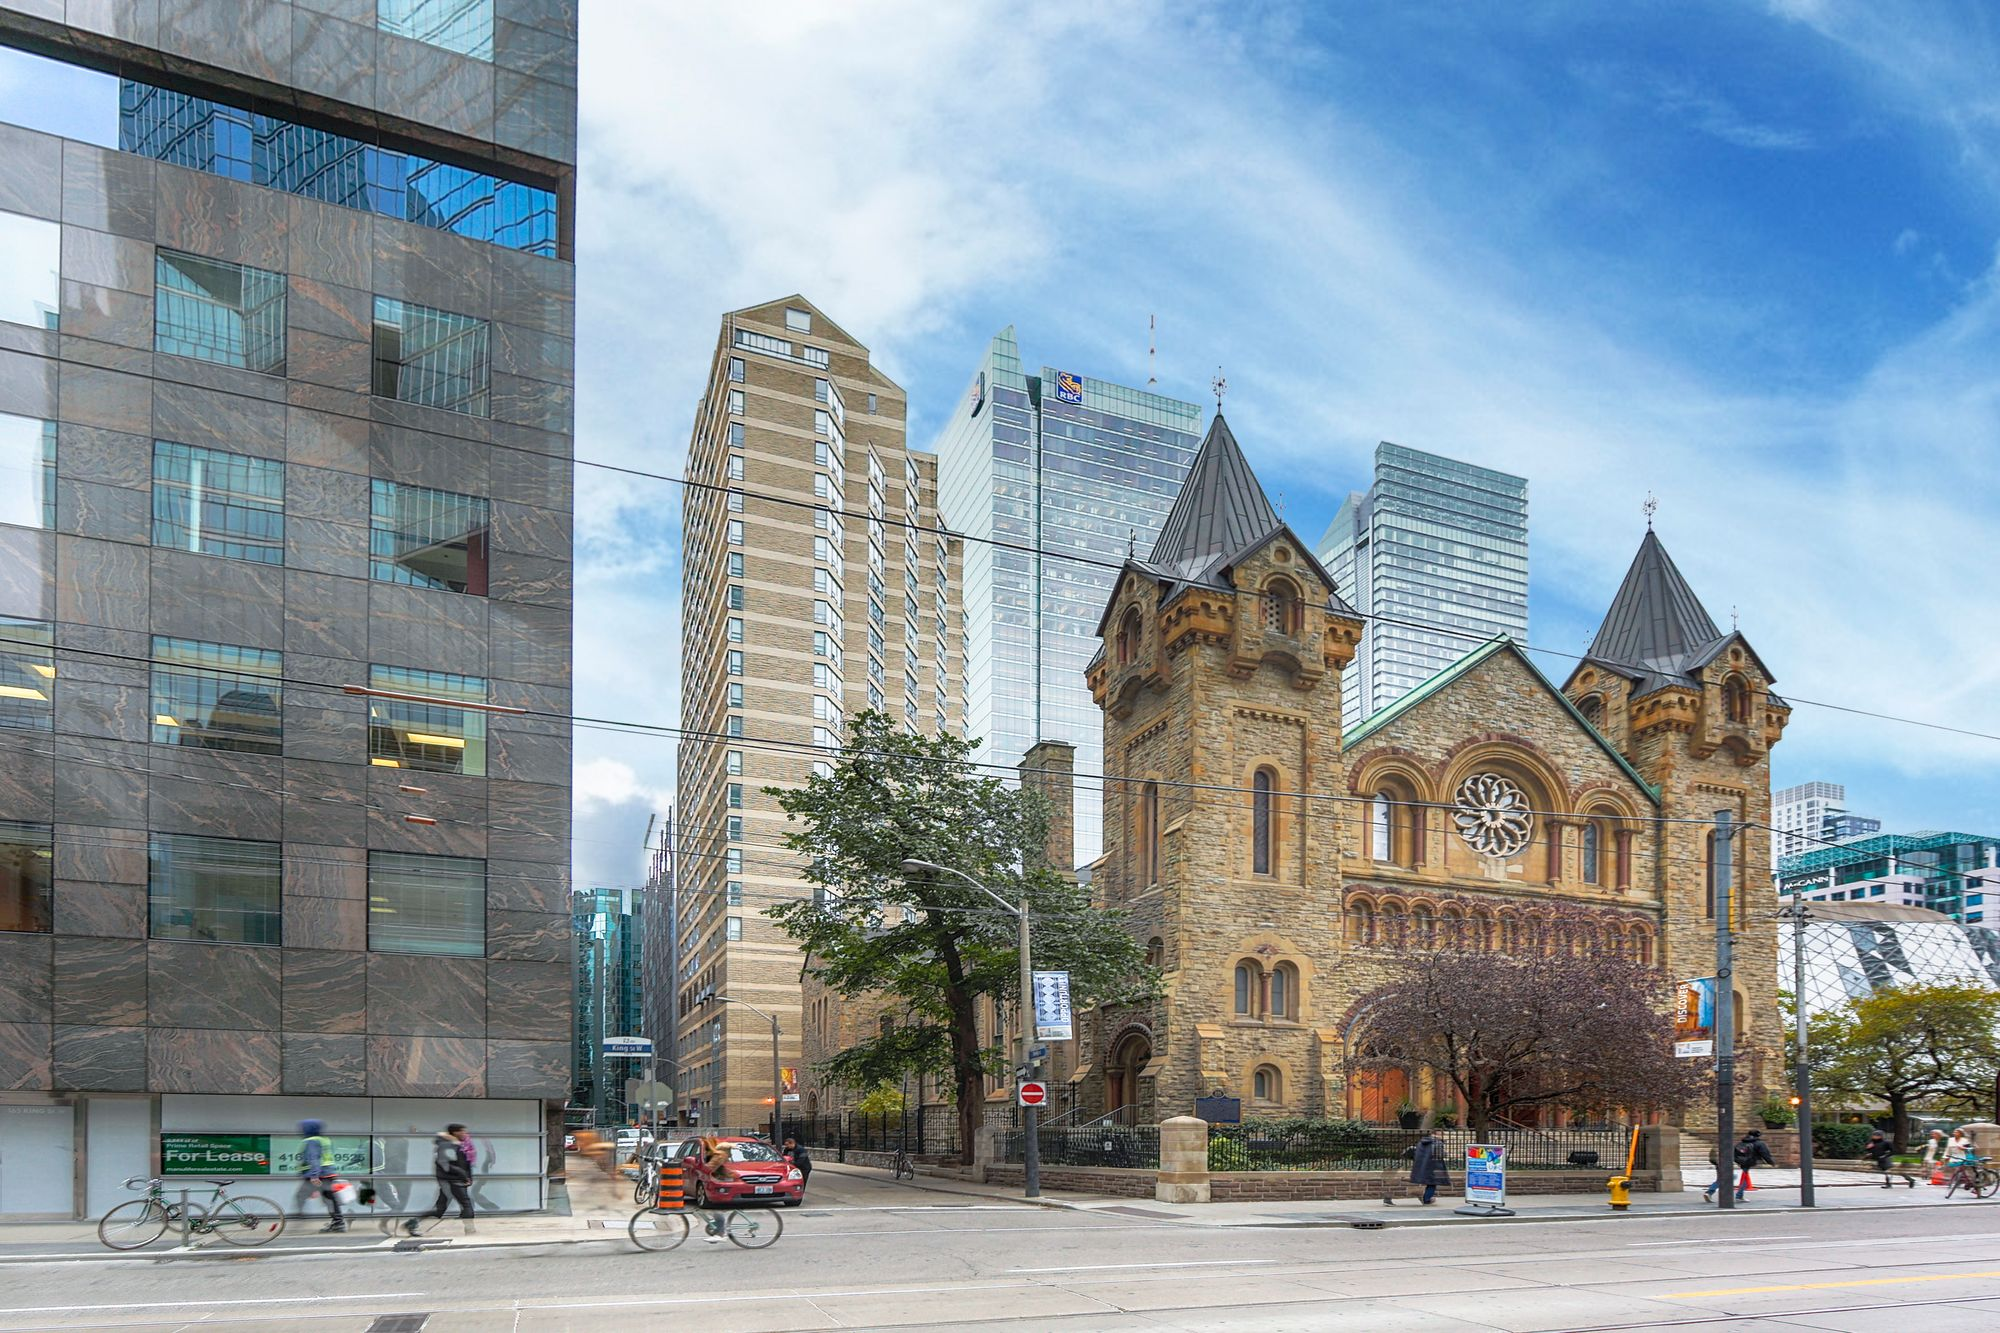 71 Simcoe St, unit 904 for sale in King West - image #1